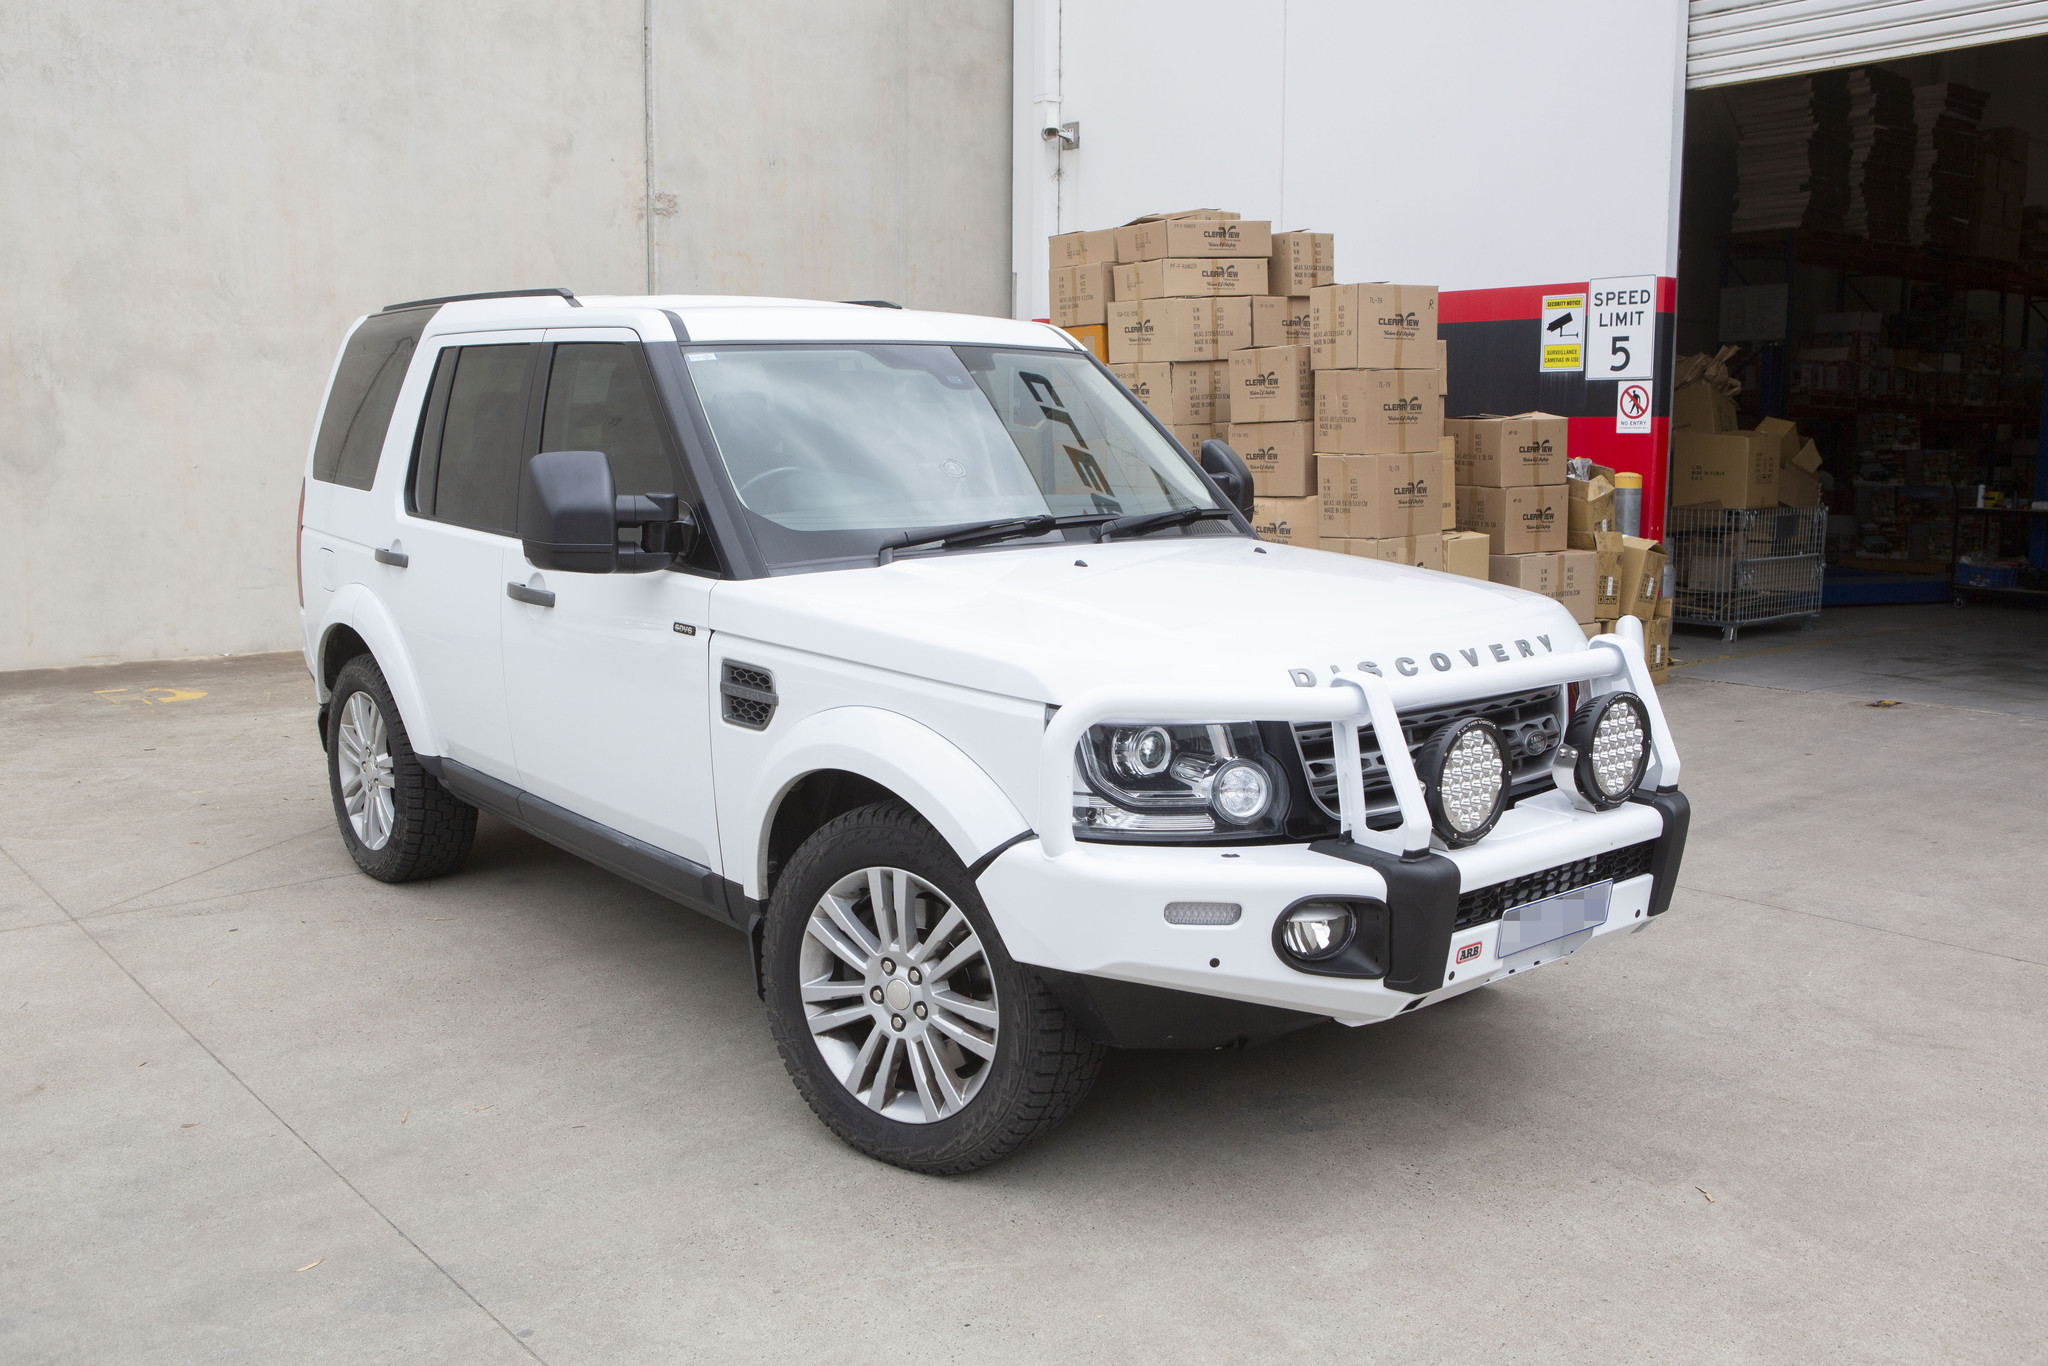 Toyota NEXT GENERATION: Clearview Extra breite spiegel Land Rover Discovery 3/4